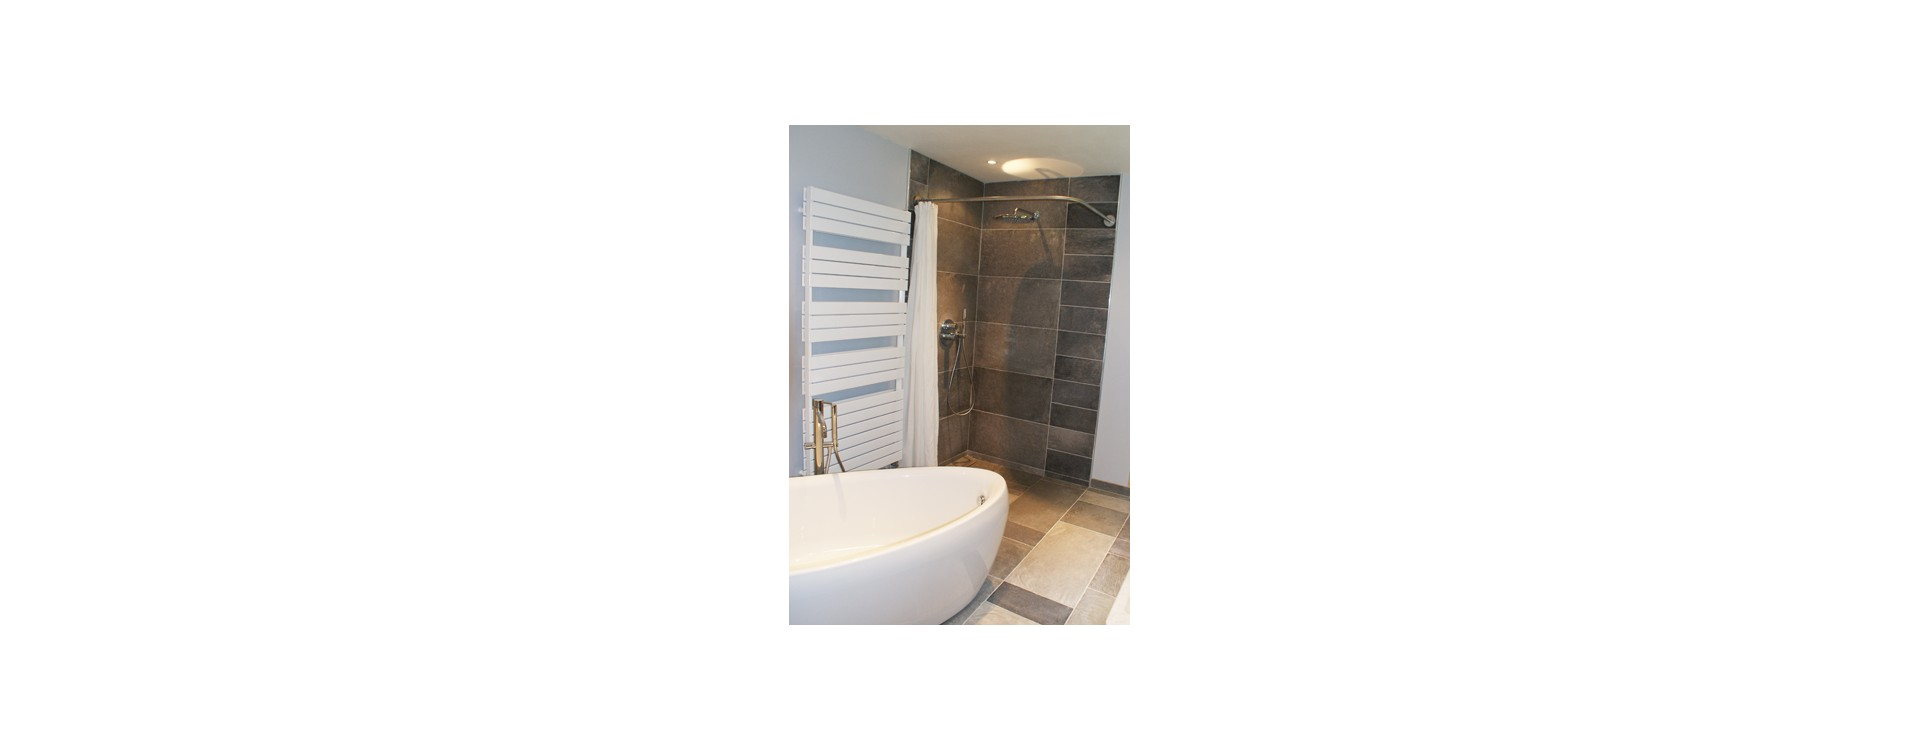 Douche italienne baignoire simple cot rnovation rnovation for Transformer un bain en douche